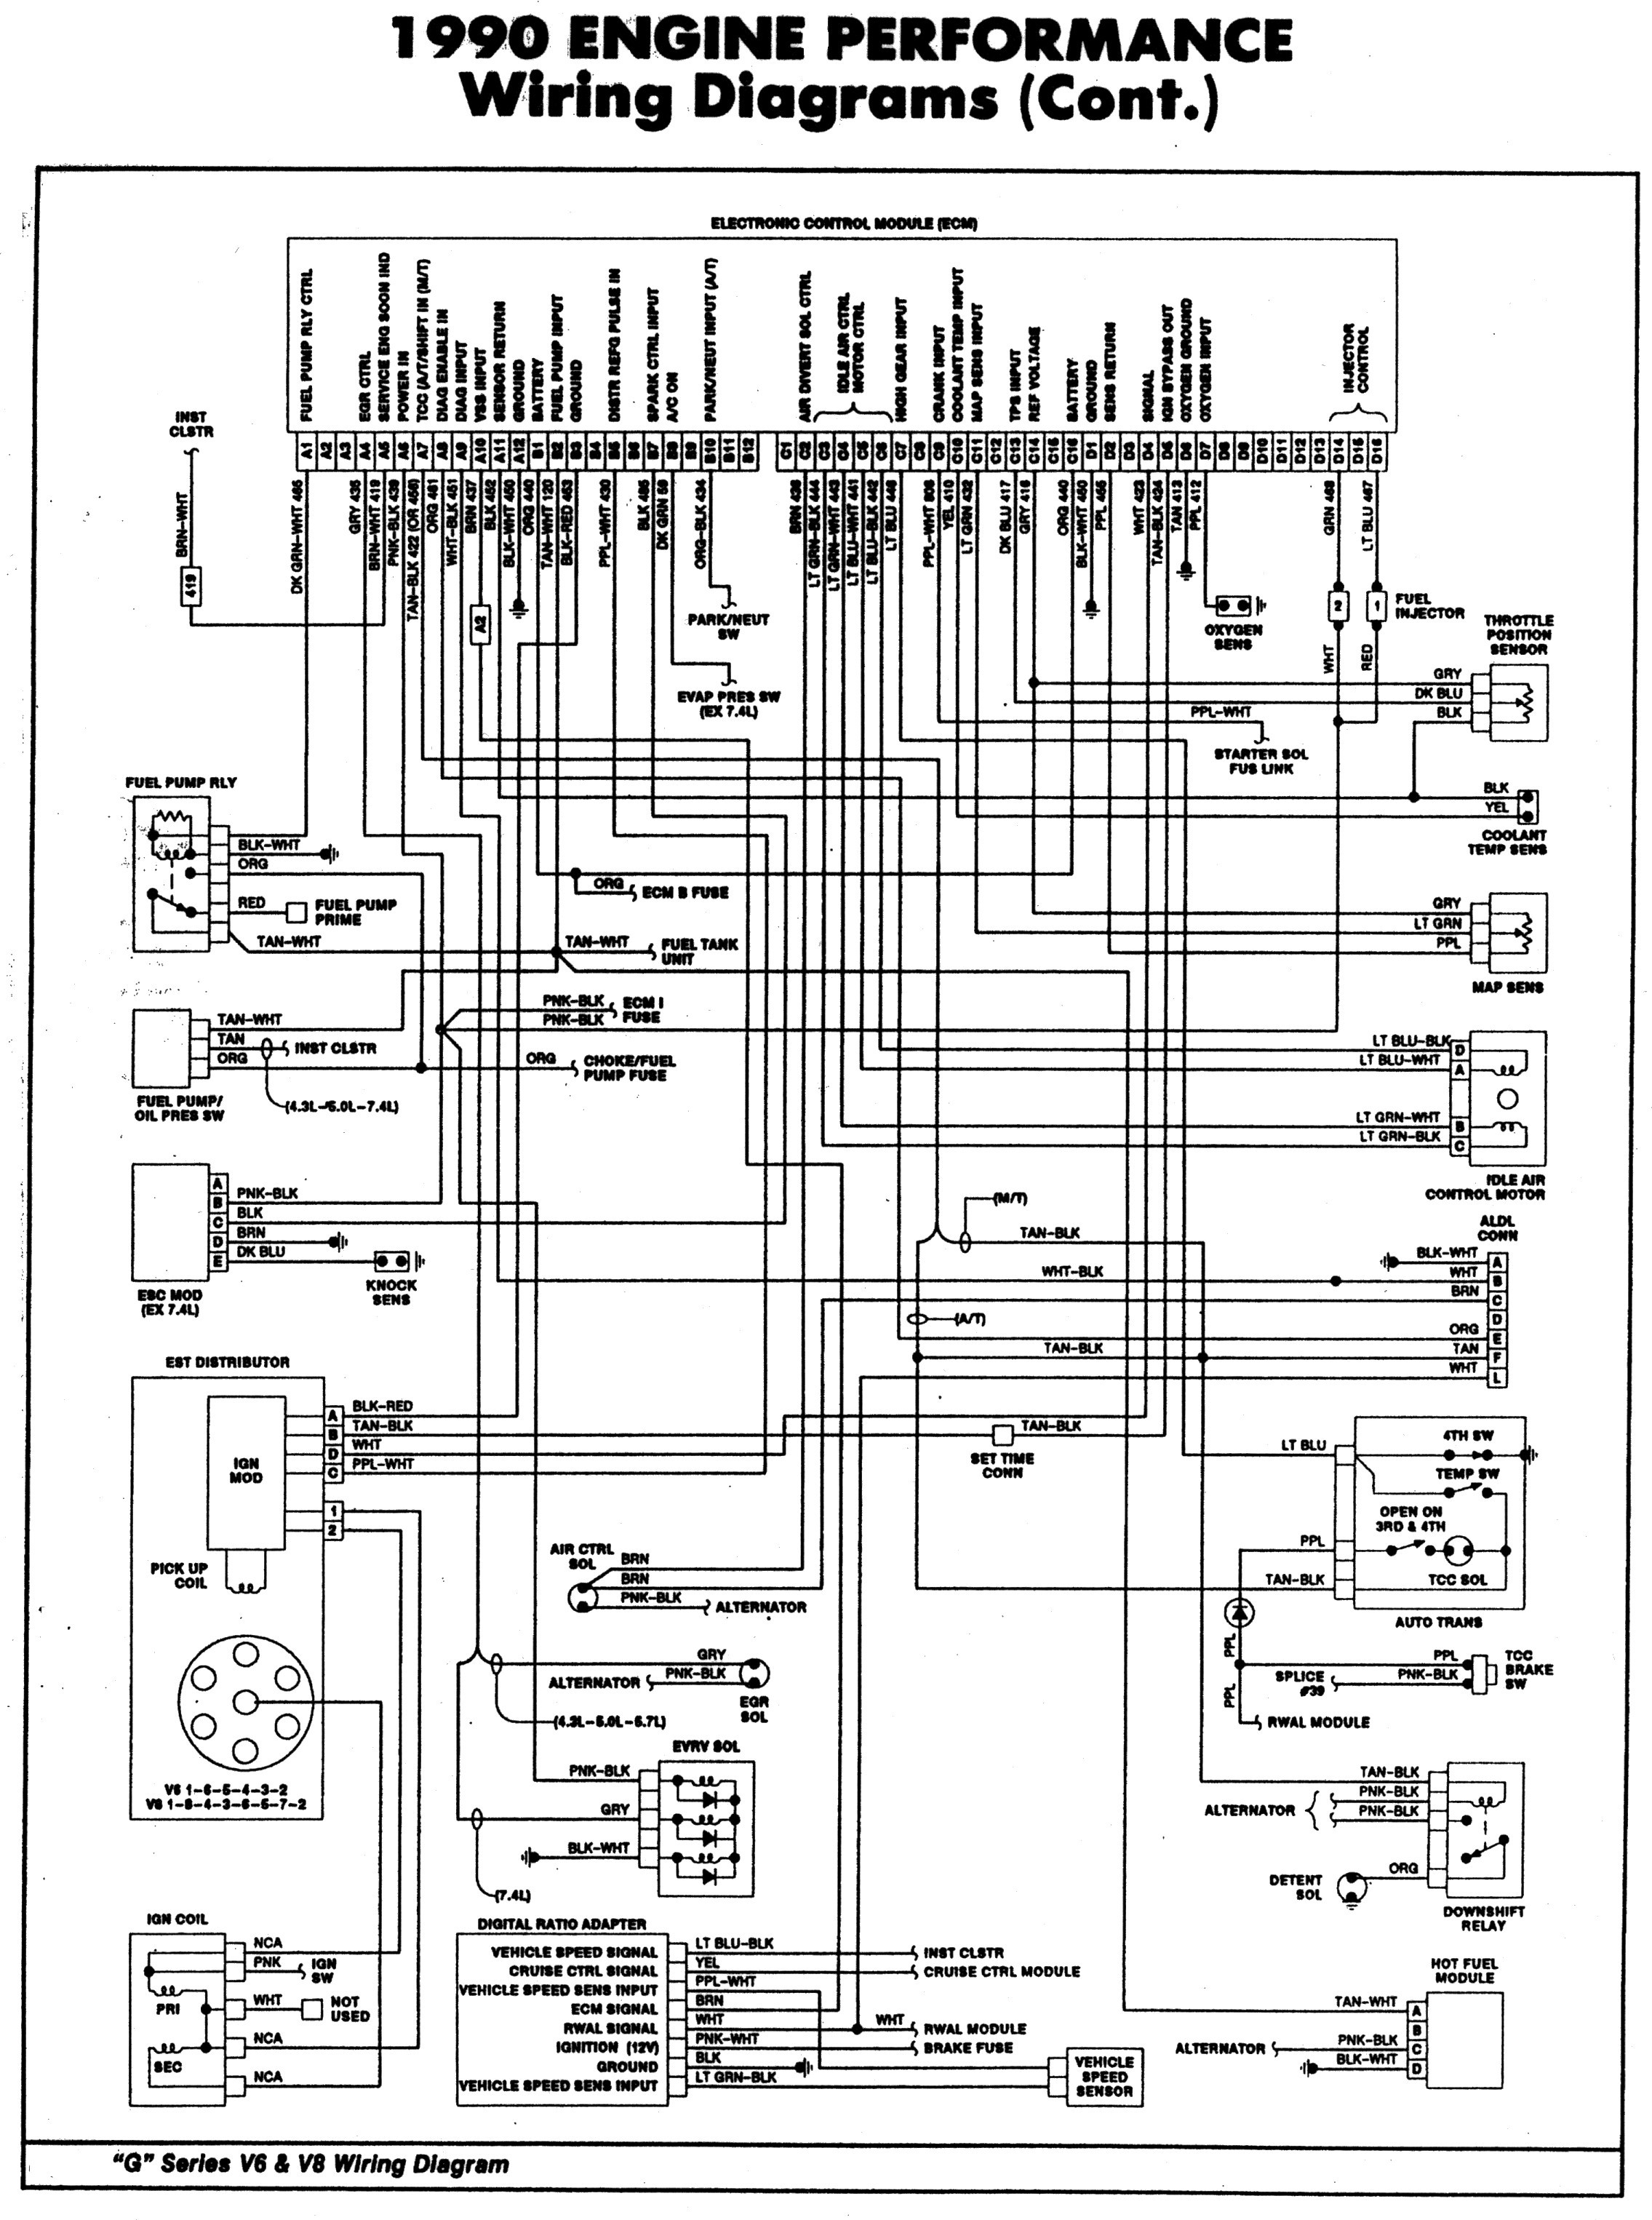 Dodge 4 7 Engine Diagram 2 Wiring Diagrams Free – Page 81 – Cnvanon Of Dodge 4 7 Engine Diagram 2